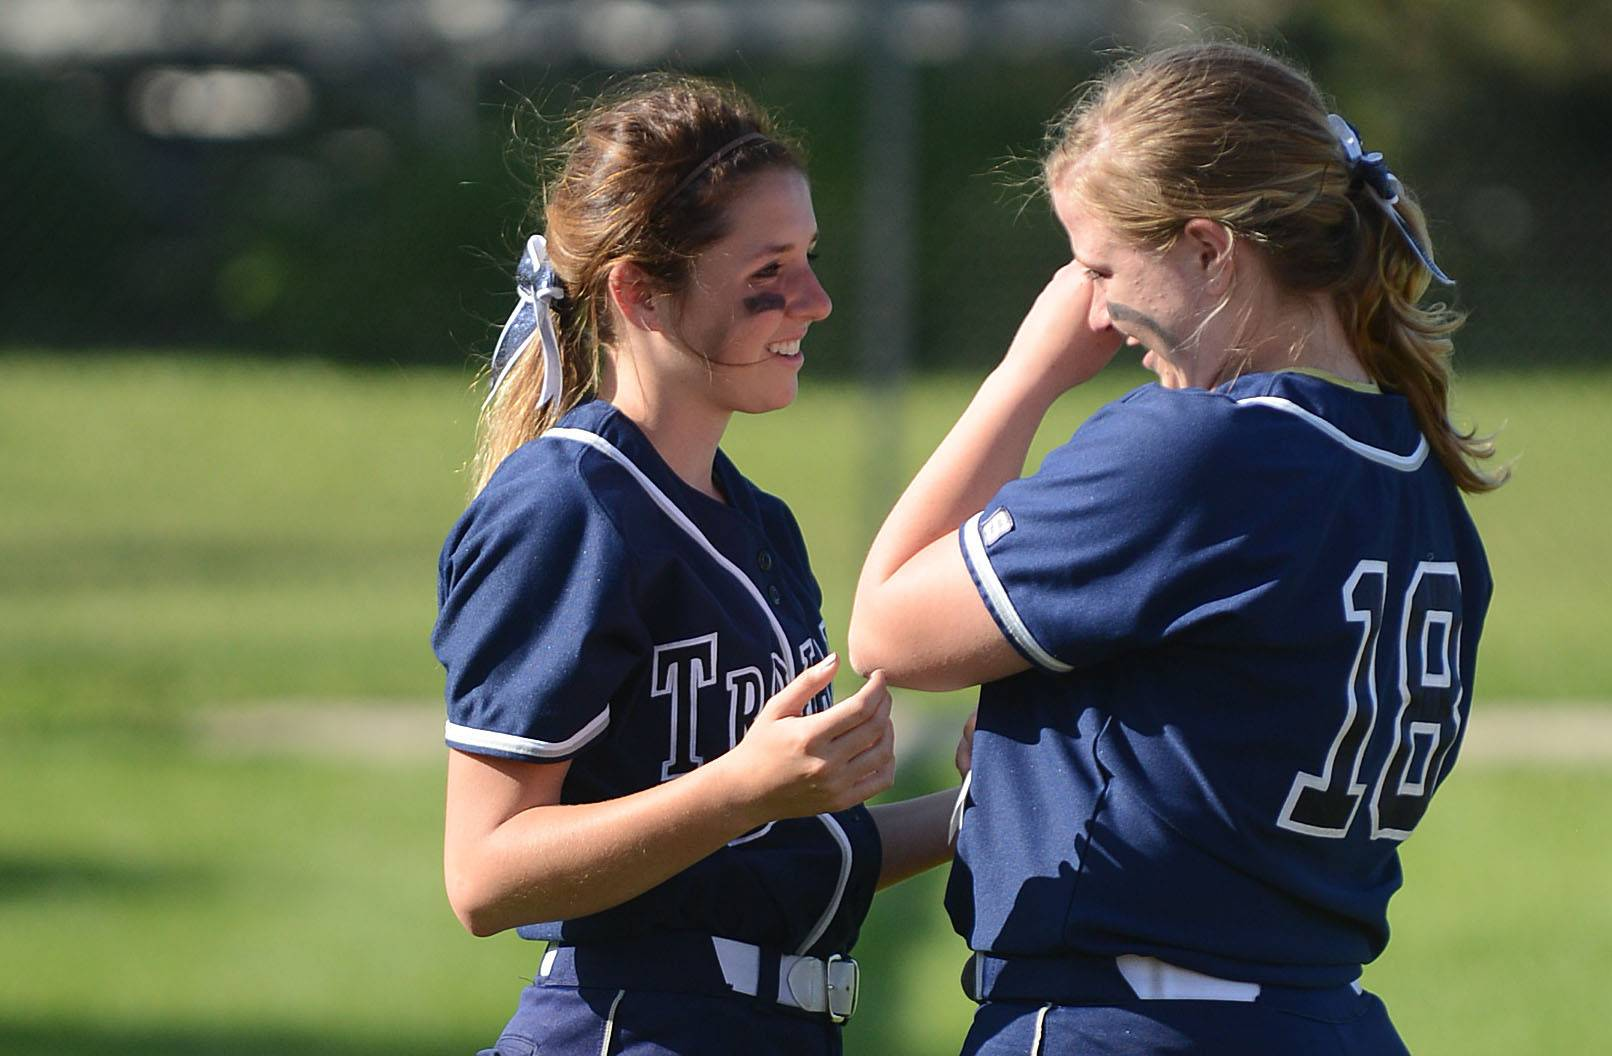 Cary-Grove's Colleen Kaveney, left, comforts teary-eyed teammate Caroline Zasadil after their 10-0 loss to Barrington in the Class 4A girls softball regional championship in Cary on Friday, May 30.